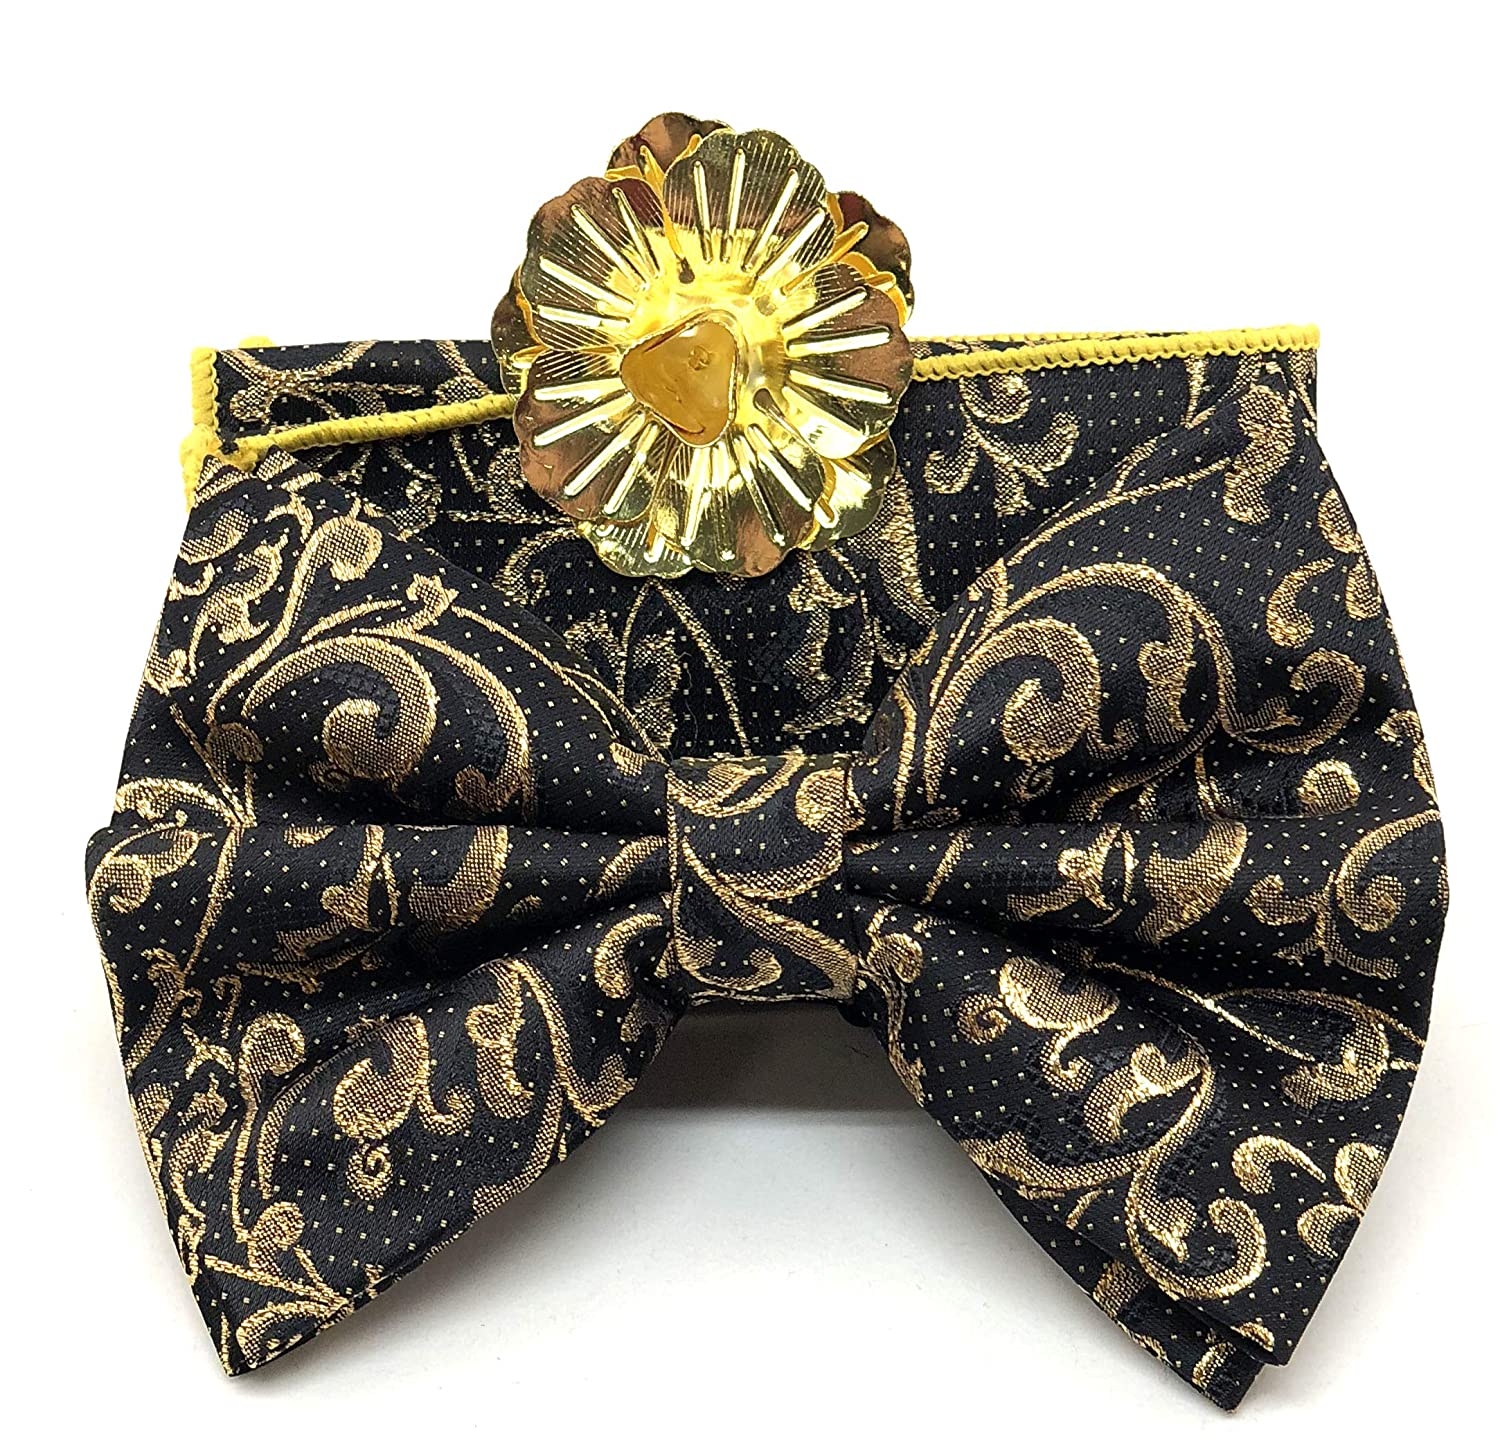 Big Bow Tie with Hankie and Metallic Flower Lapel Black and Gold